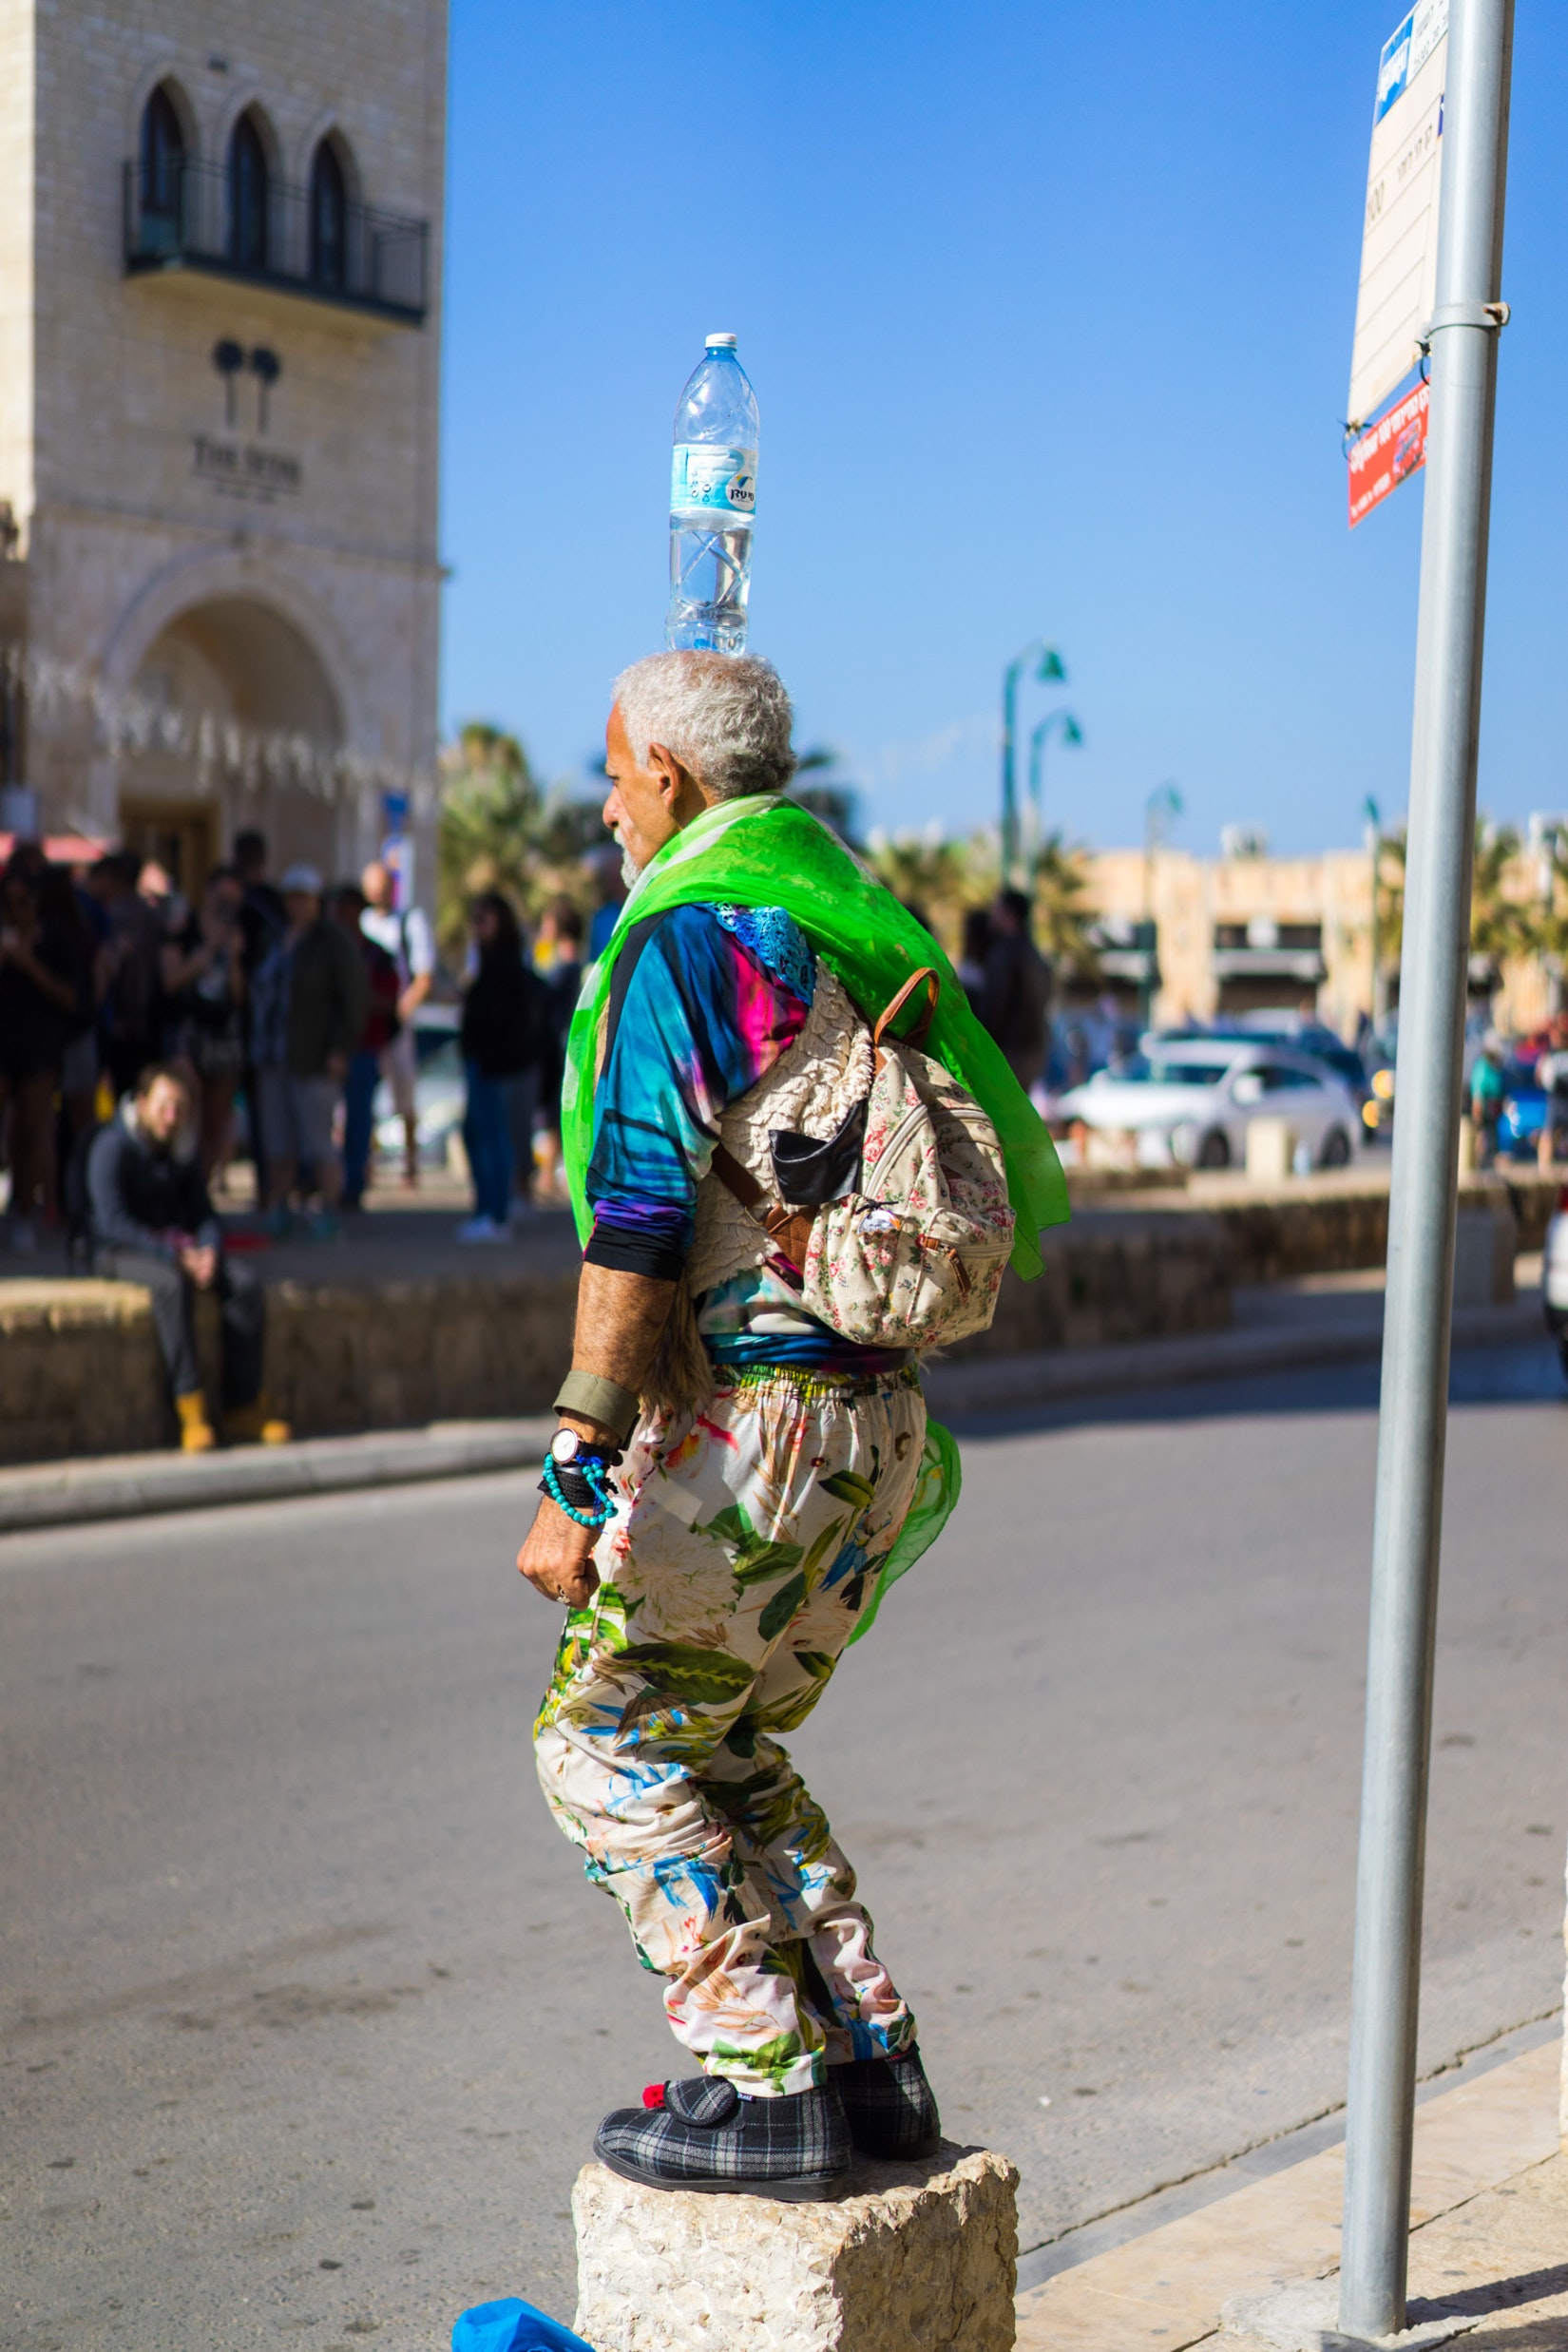 A street-performing man balancing a bottle on his head in Jaffa, Israel